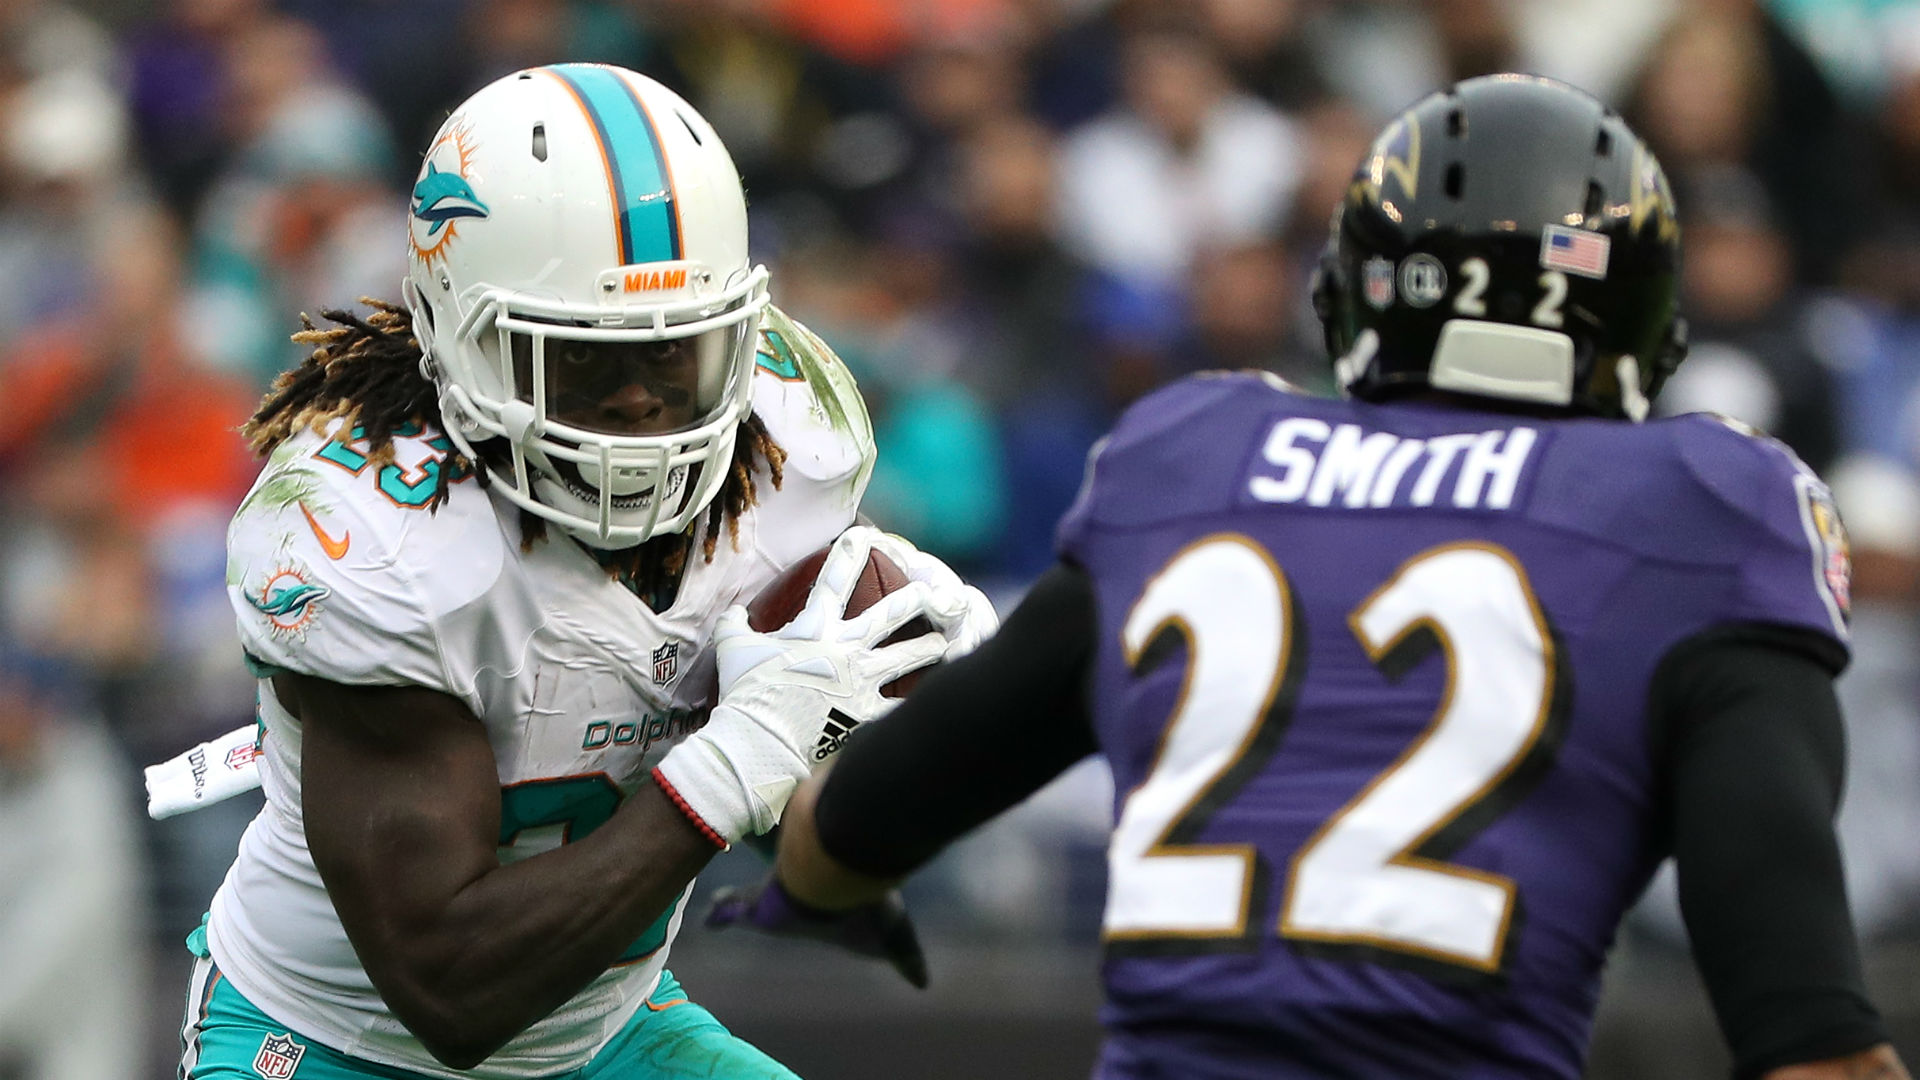 Dolphins vs. Ravens: How to watch, live stream 'Thursday Night Football'